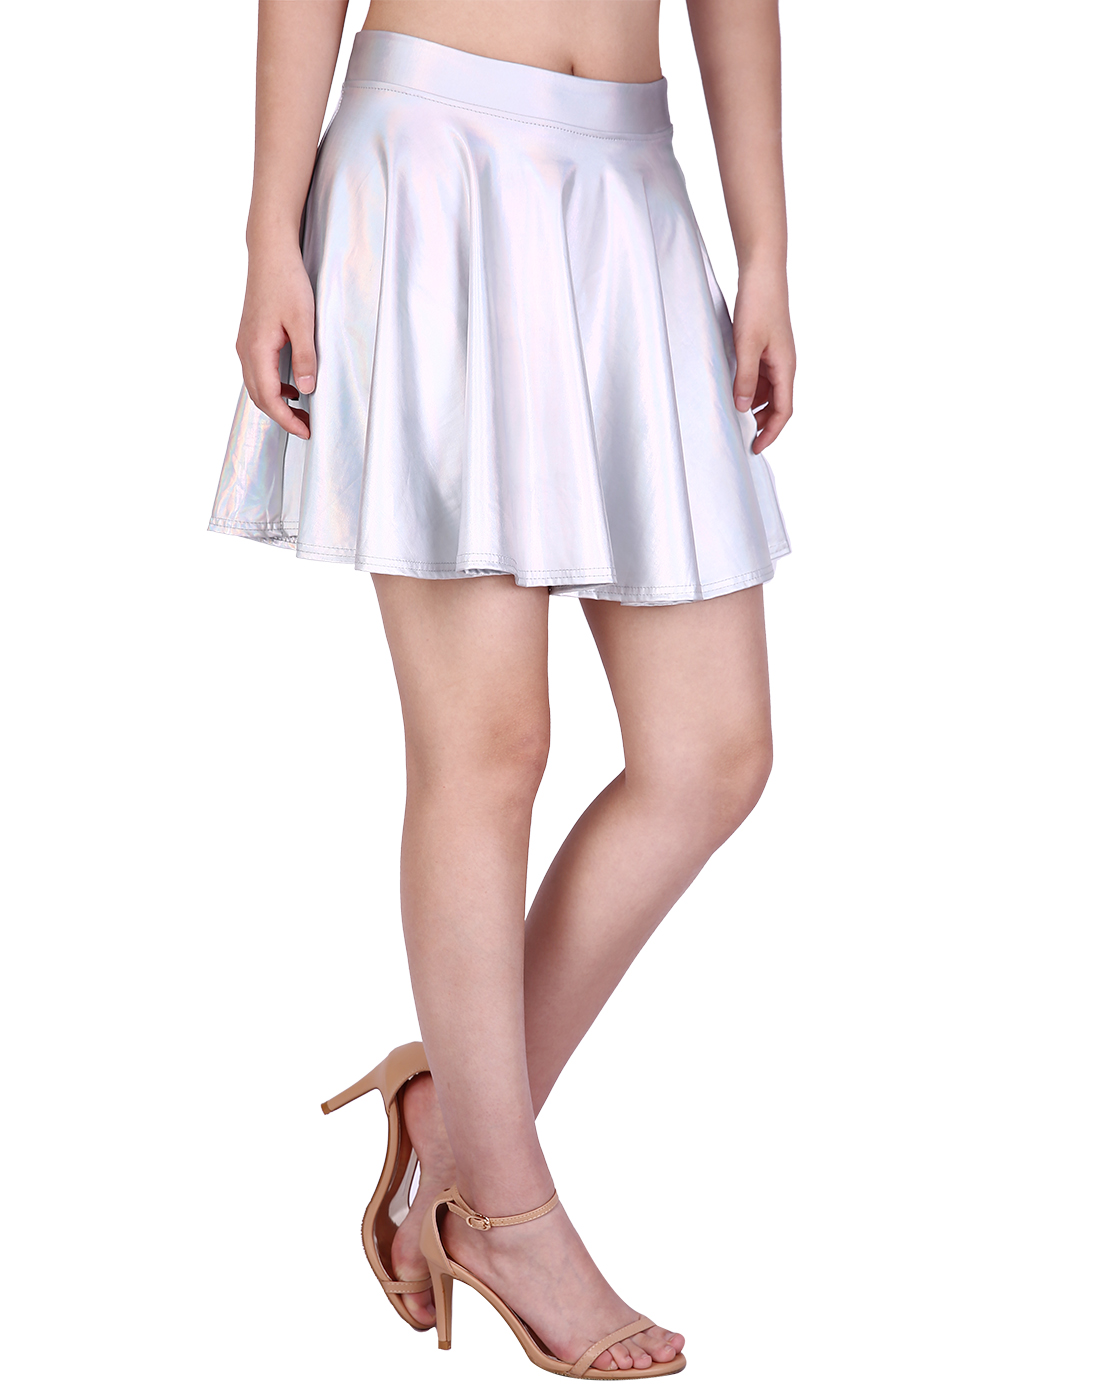 1565ecab271e4 HDE Women s Casual Fashion Flared Pleated A-Line Circle Skater Skirt  (Holographic